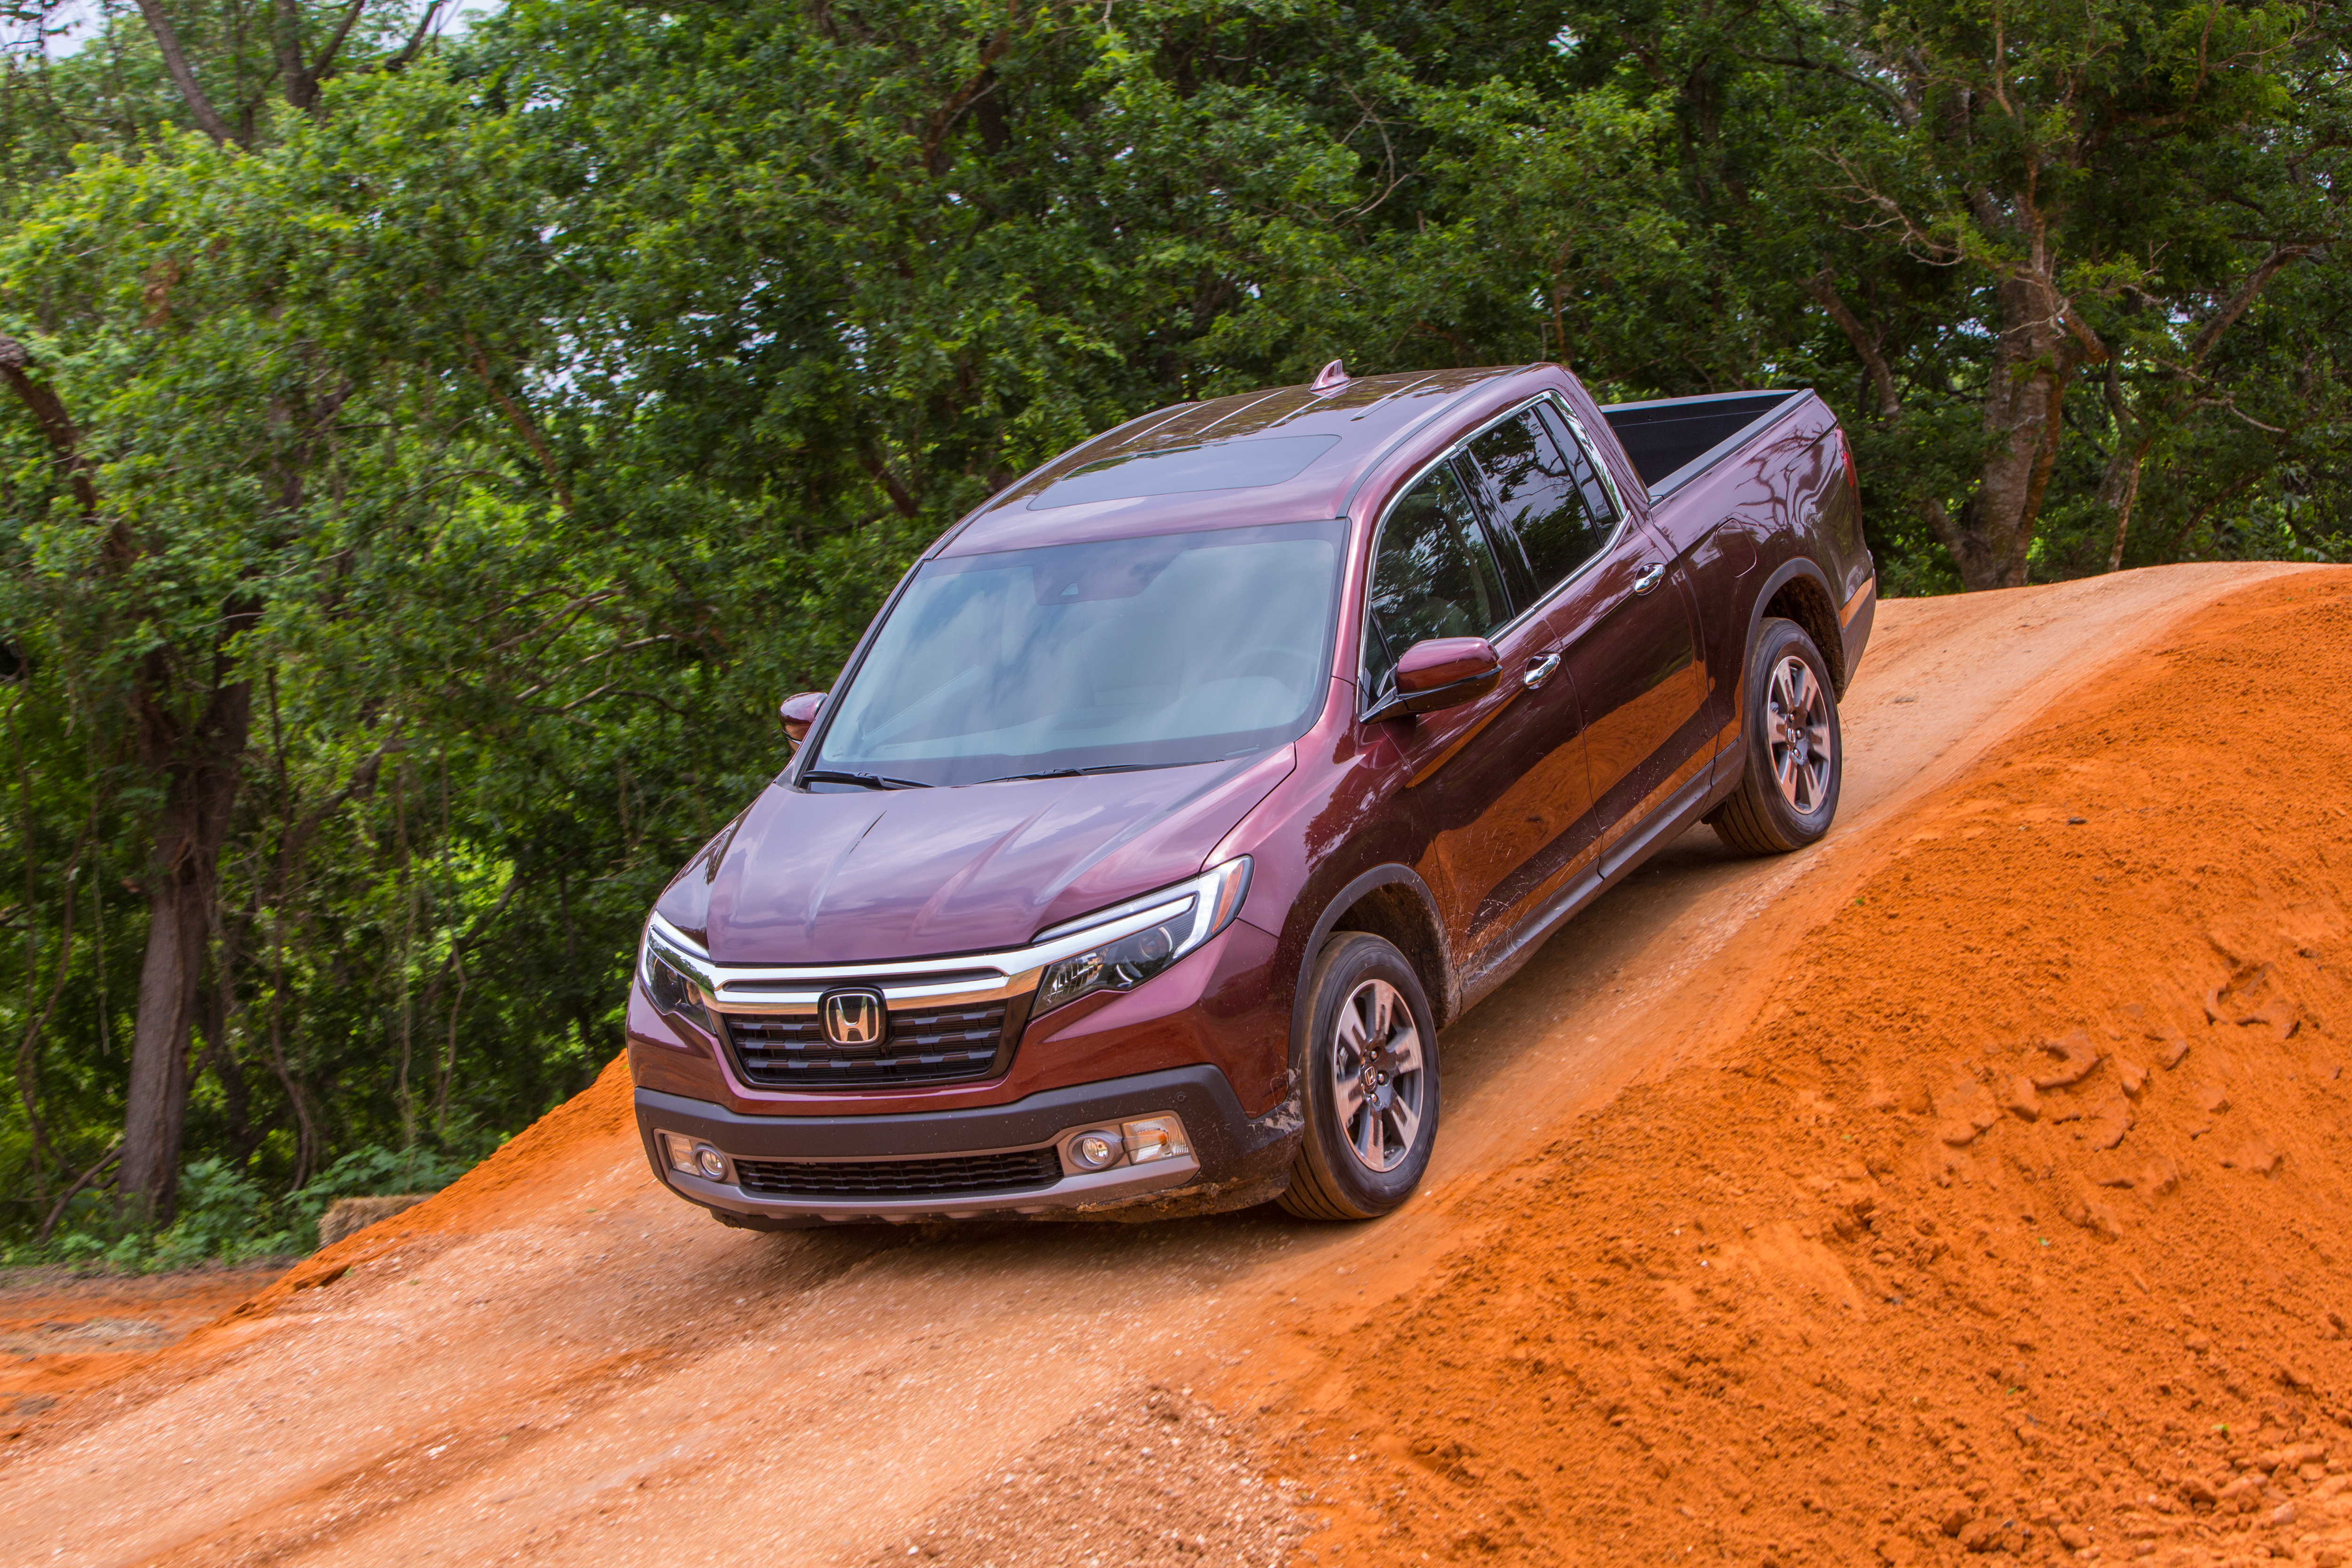 Honda Ridgeline hd photo